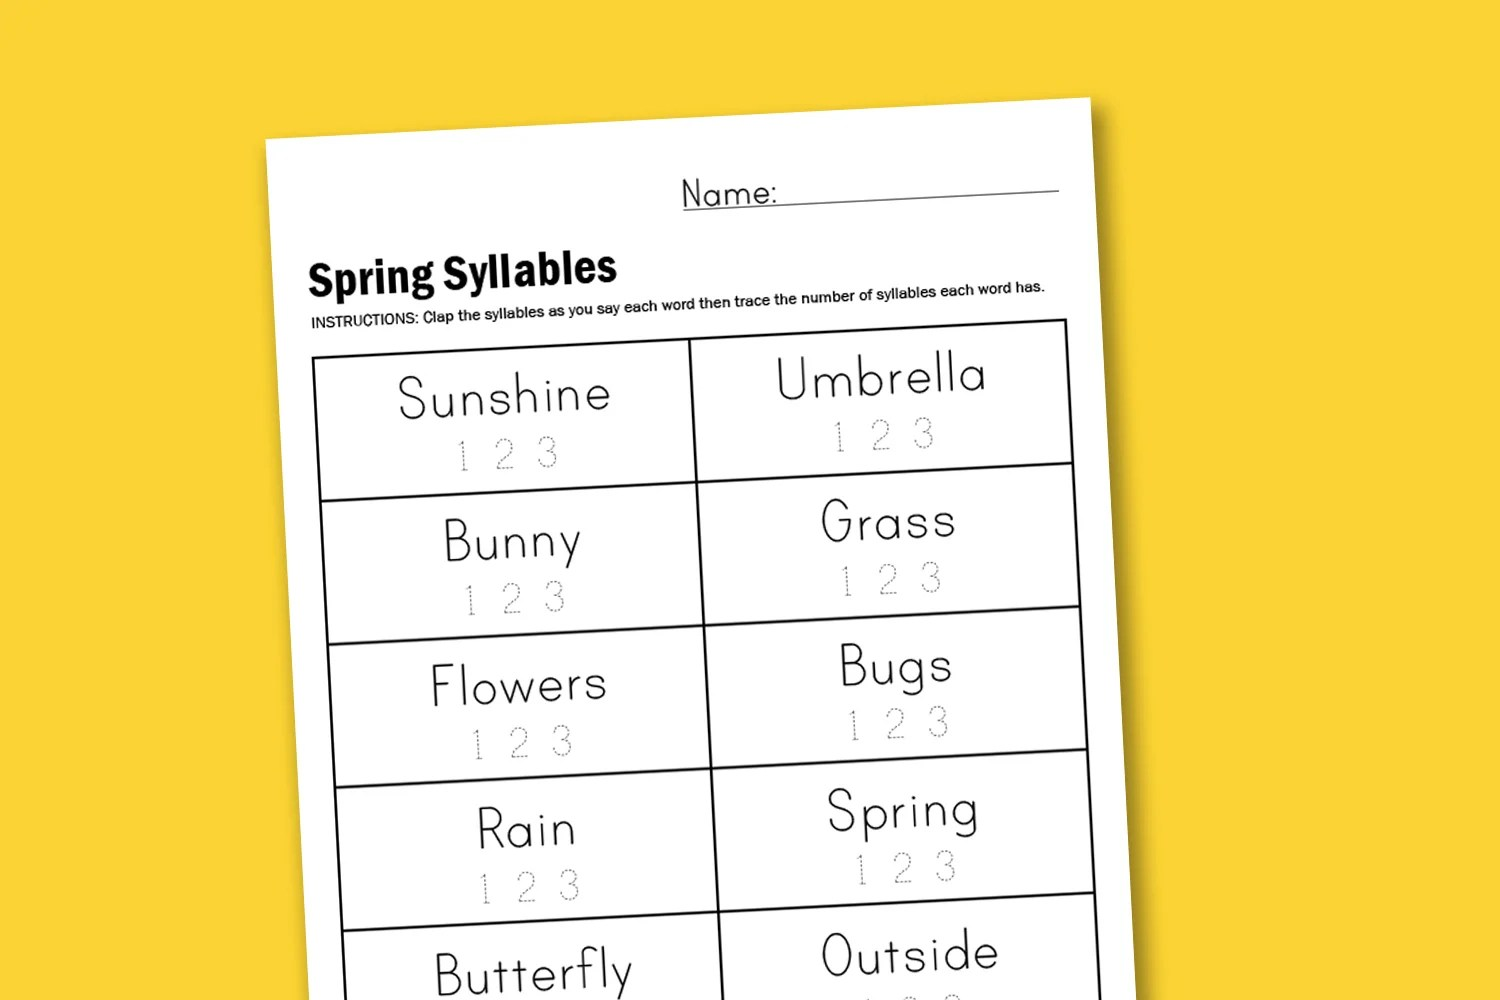 Worksheet Wednesday Spring Syllables